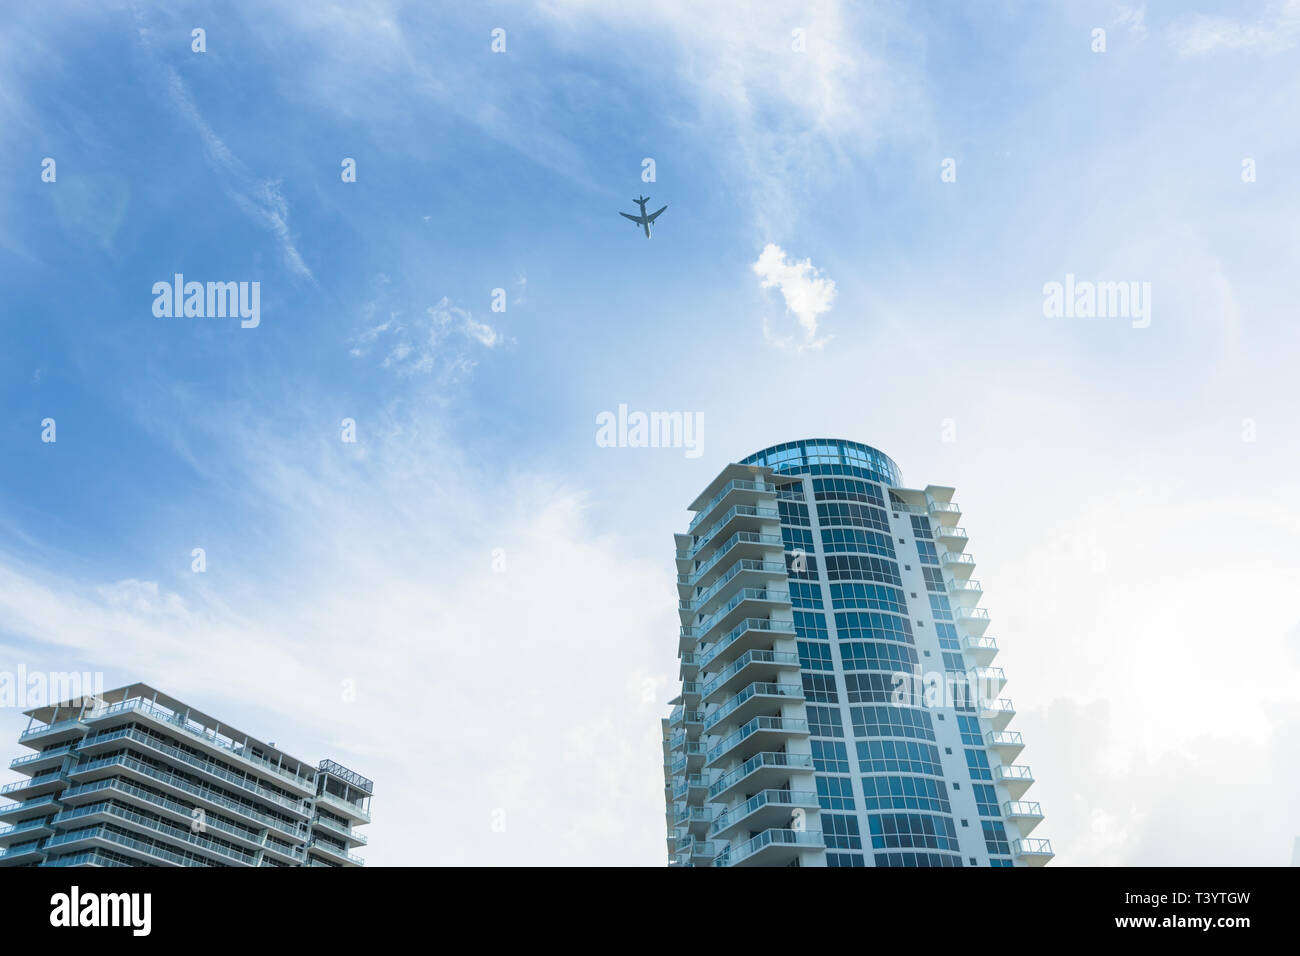 High-rise apartment buildings with passenger plane flying past high above - Stock Image